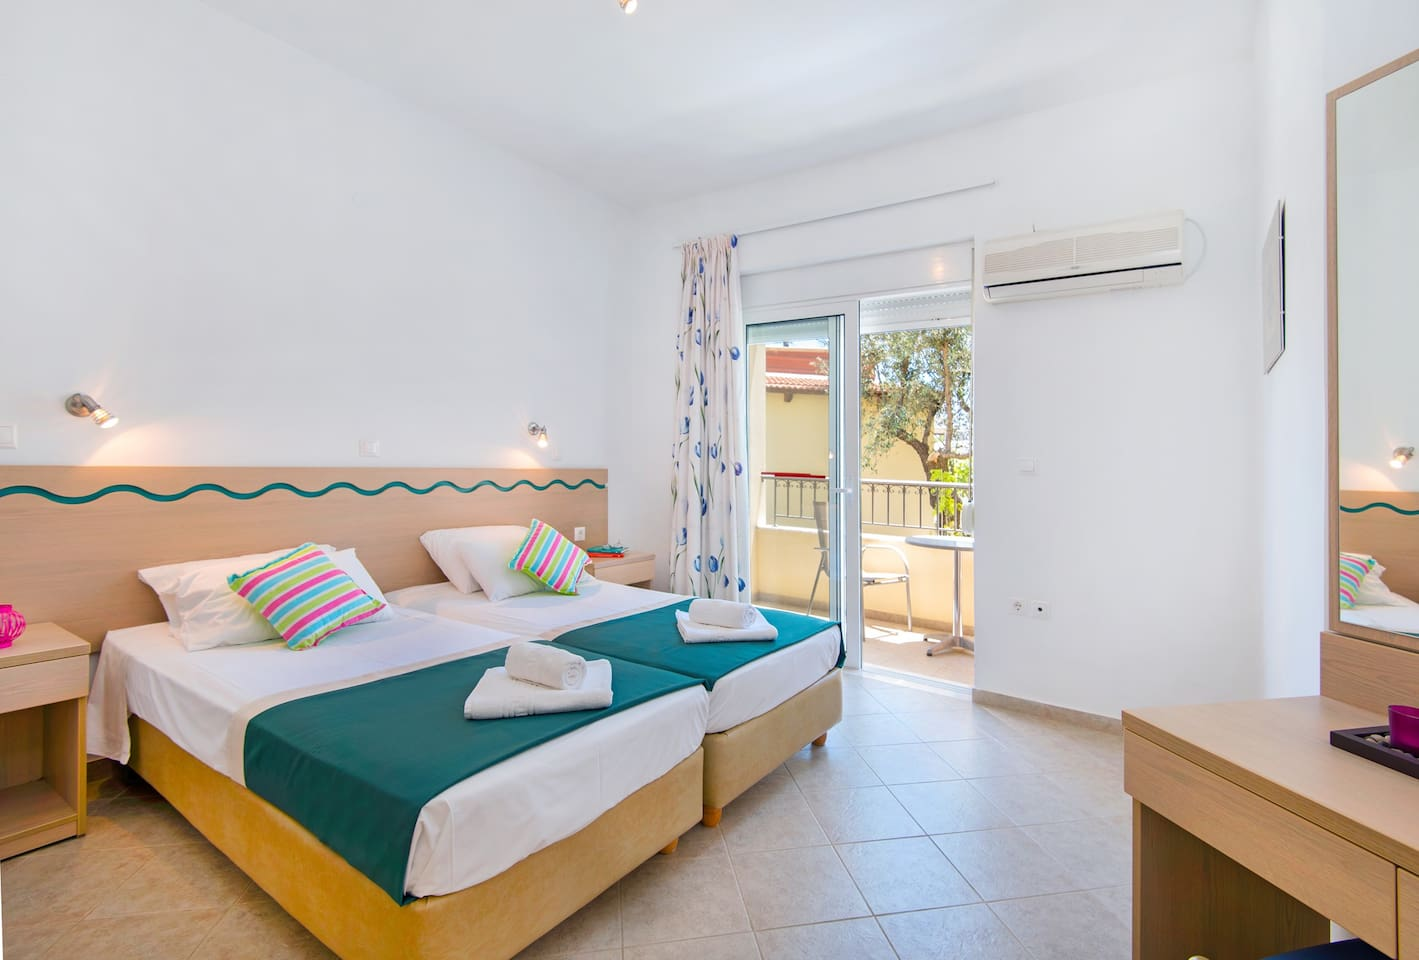 Bedroom with twin beds and a balcony